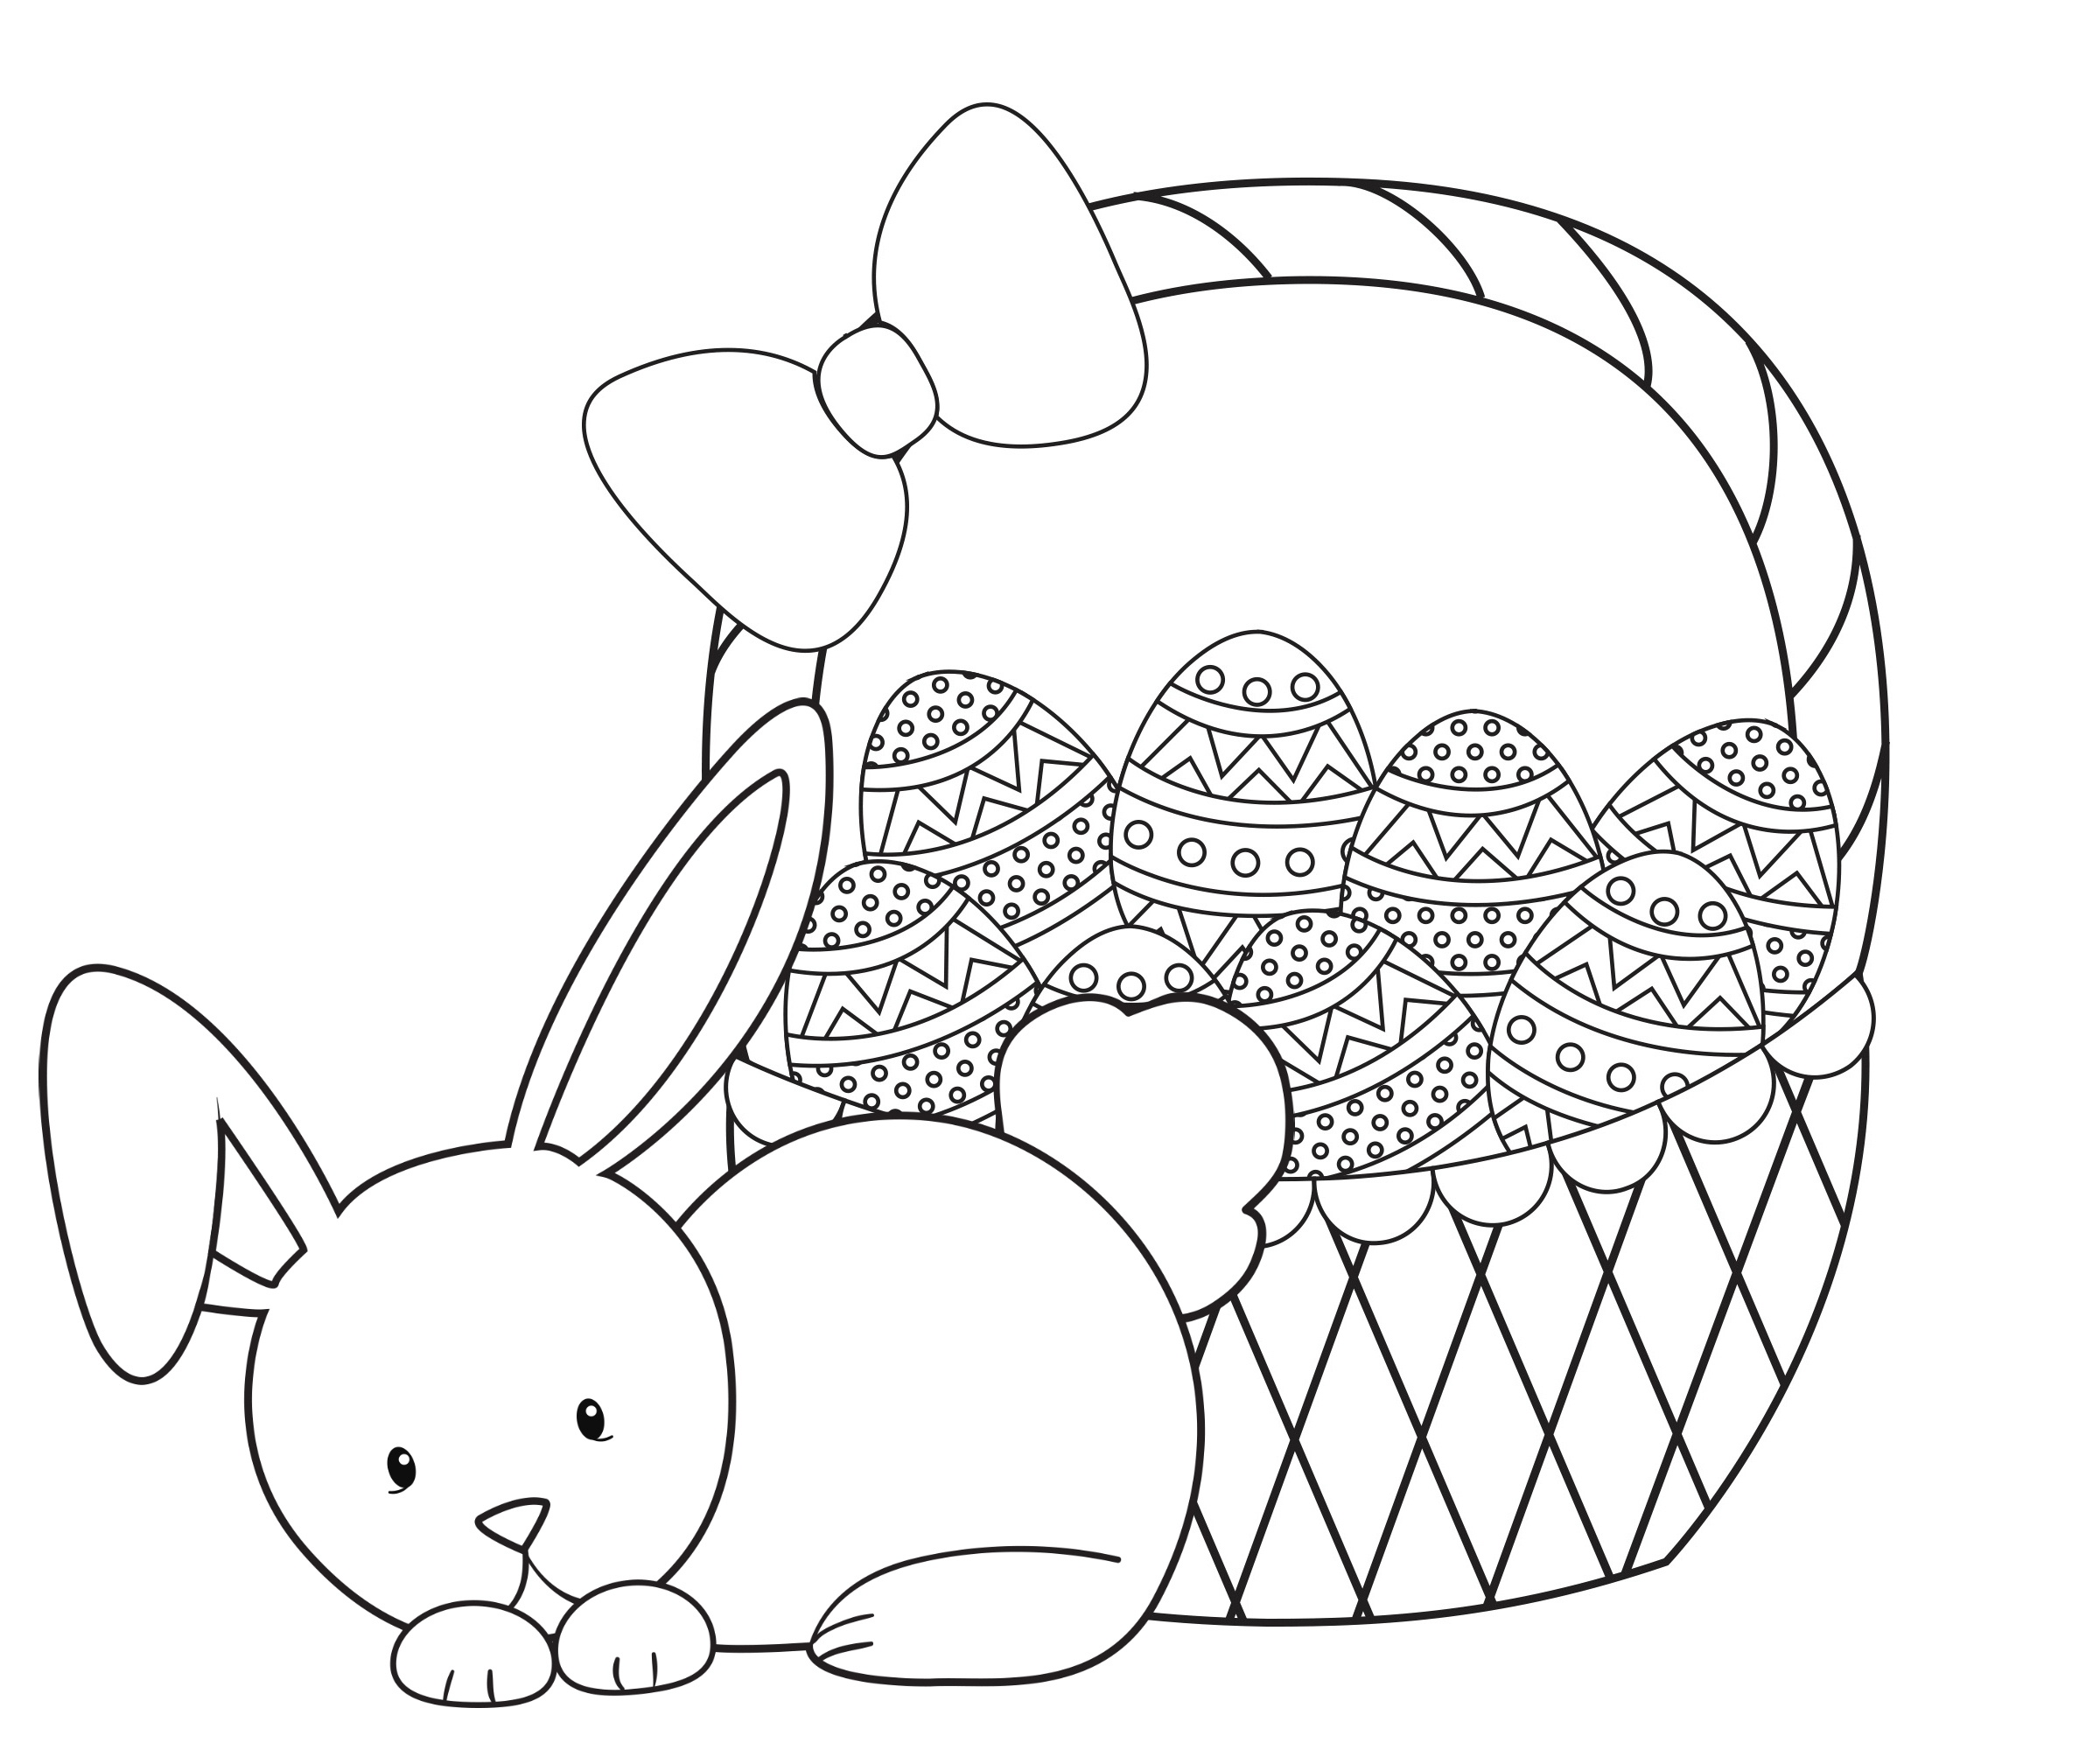 Easter Coloring Pages For Kids - Crazy Little Projects - Free Easter Color Pages Printable